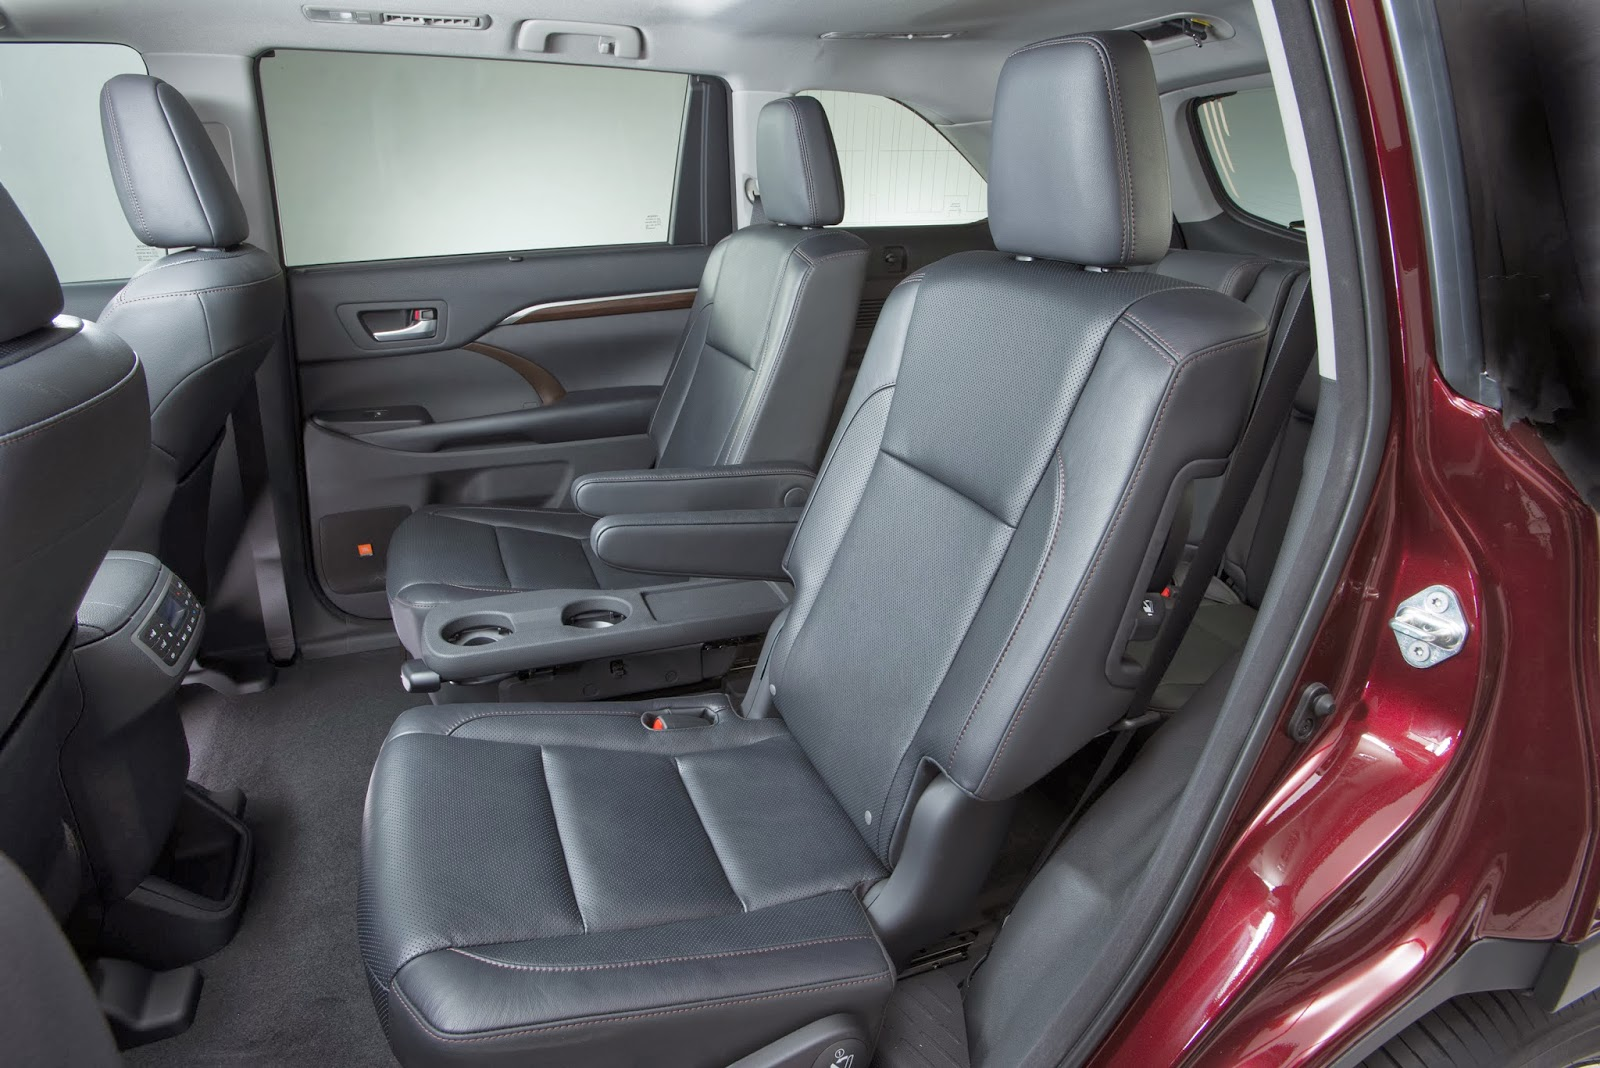 2015 Suvs With 2nd Row Captains Chairs.html